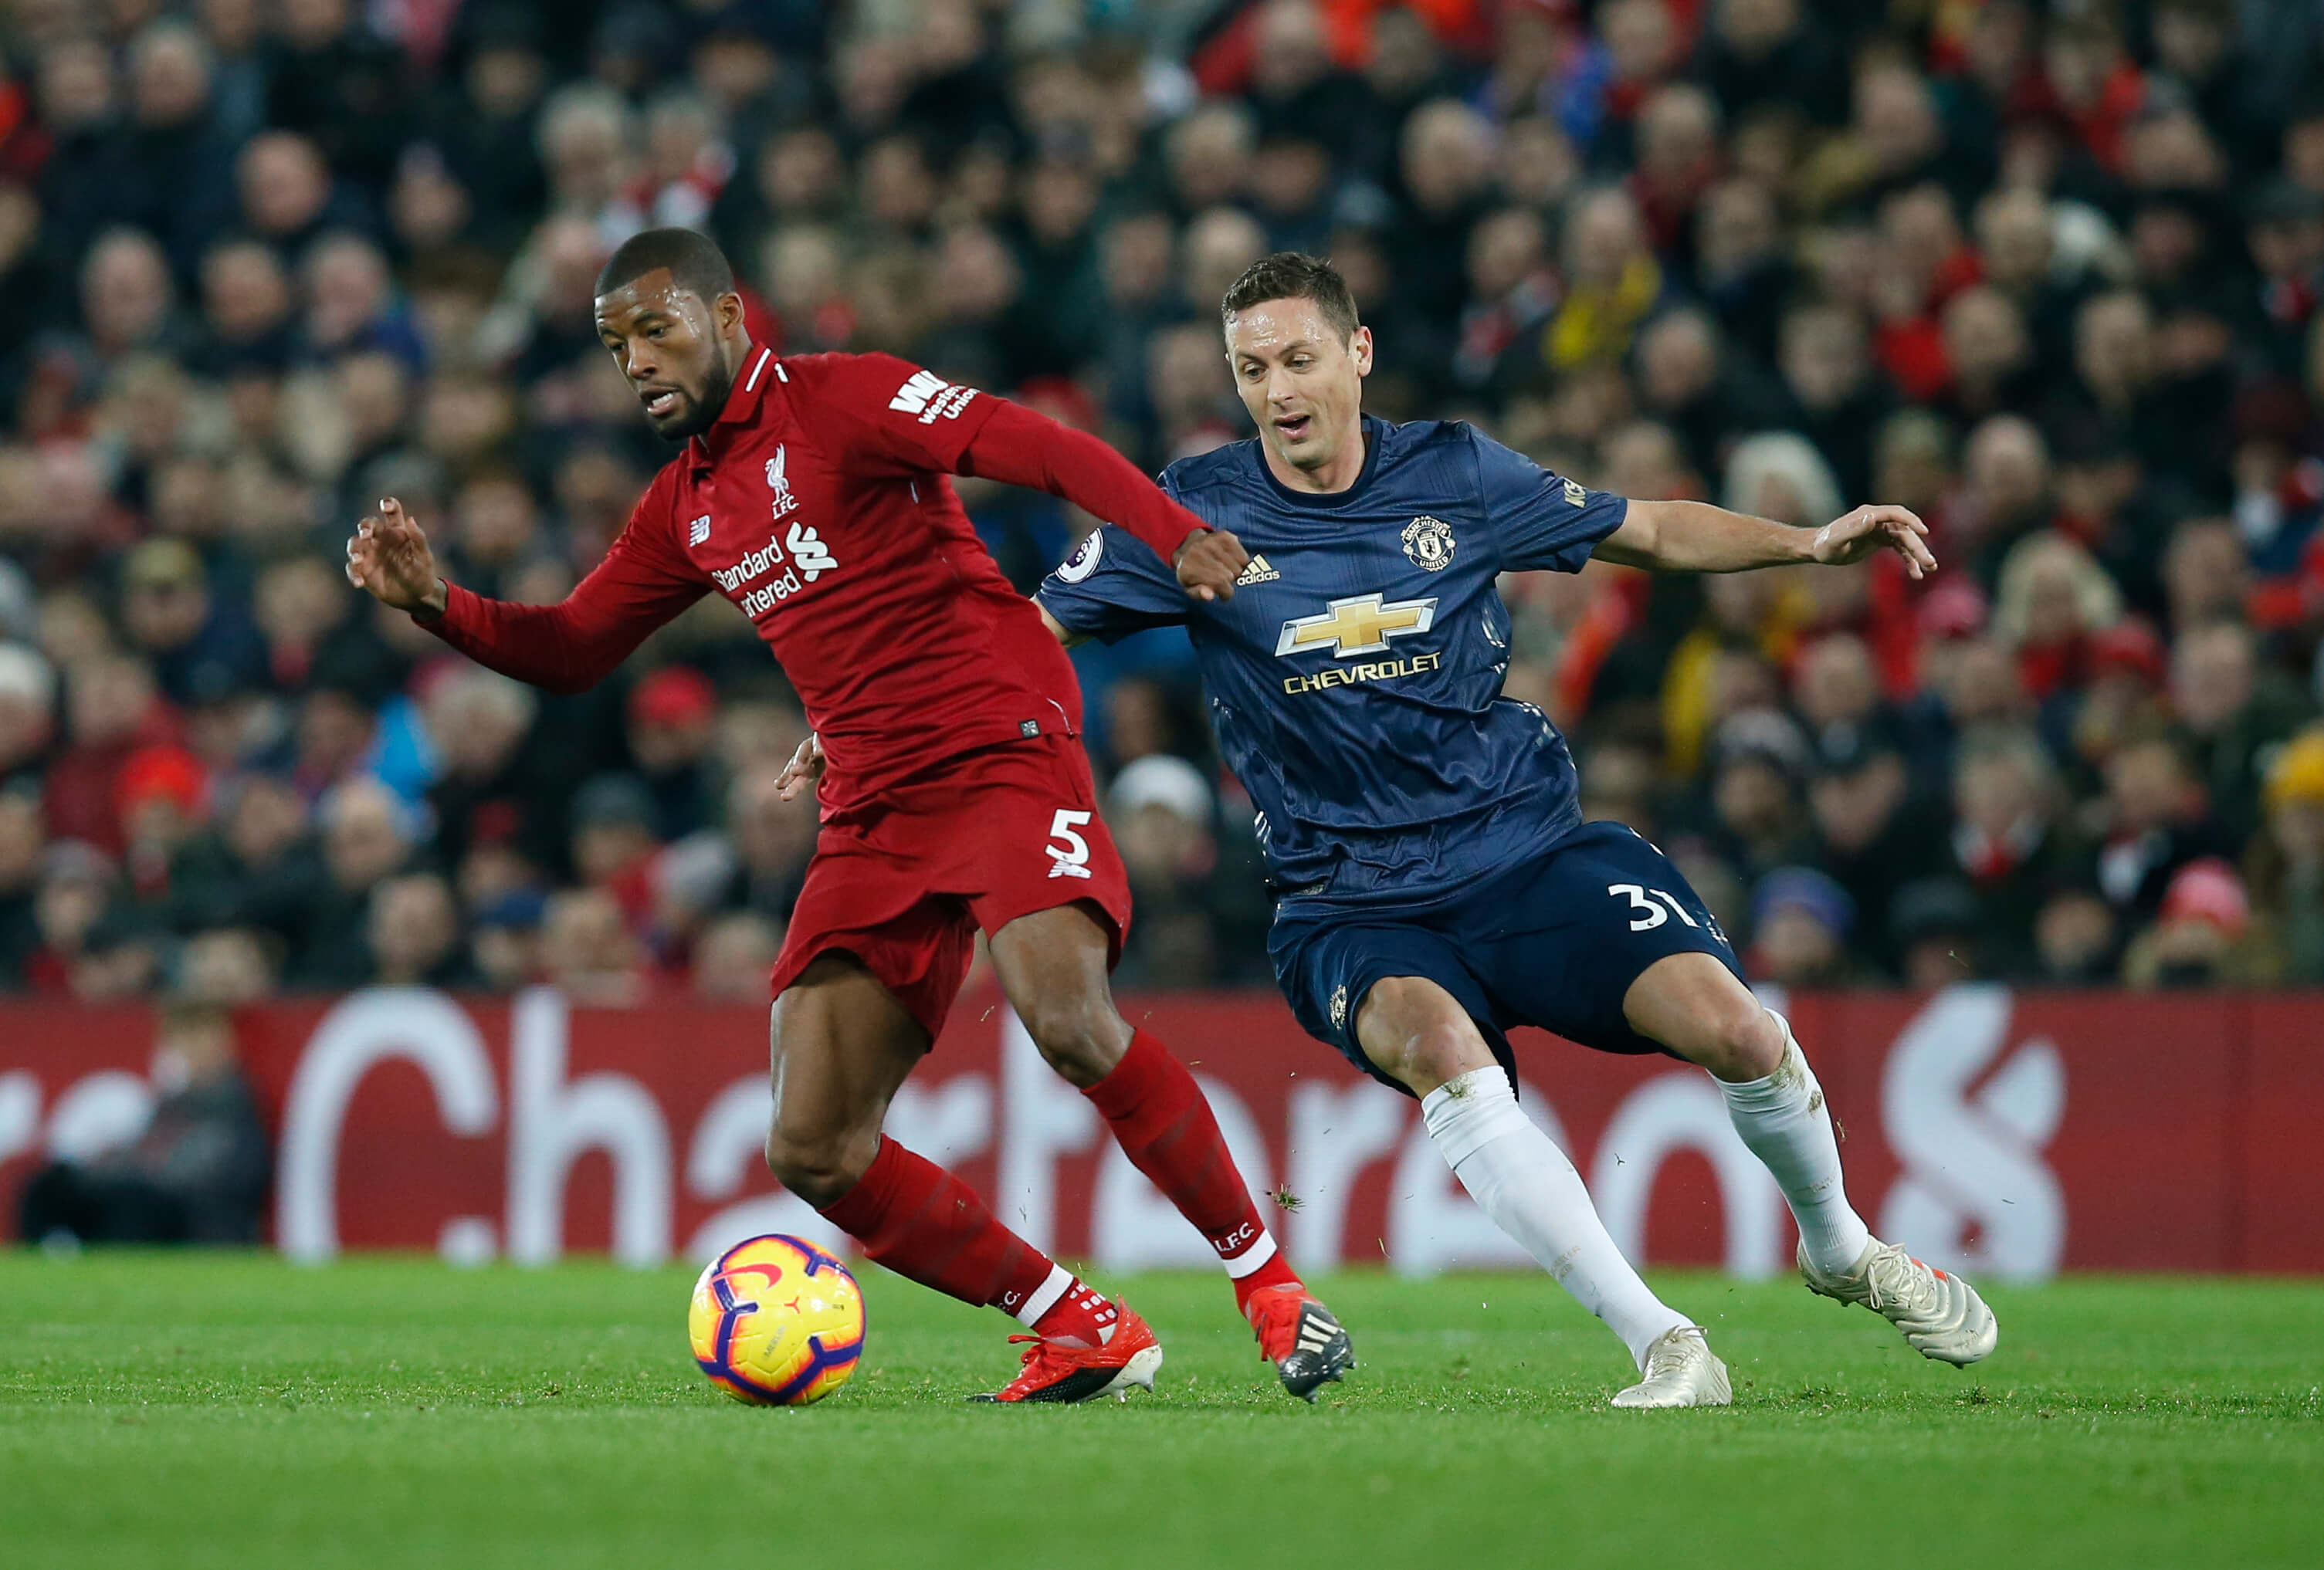 Premier League: United vs. Liverpool Opposition Preview and Betting Tips